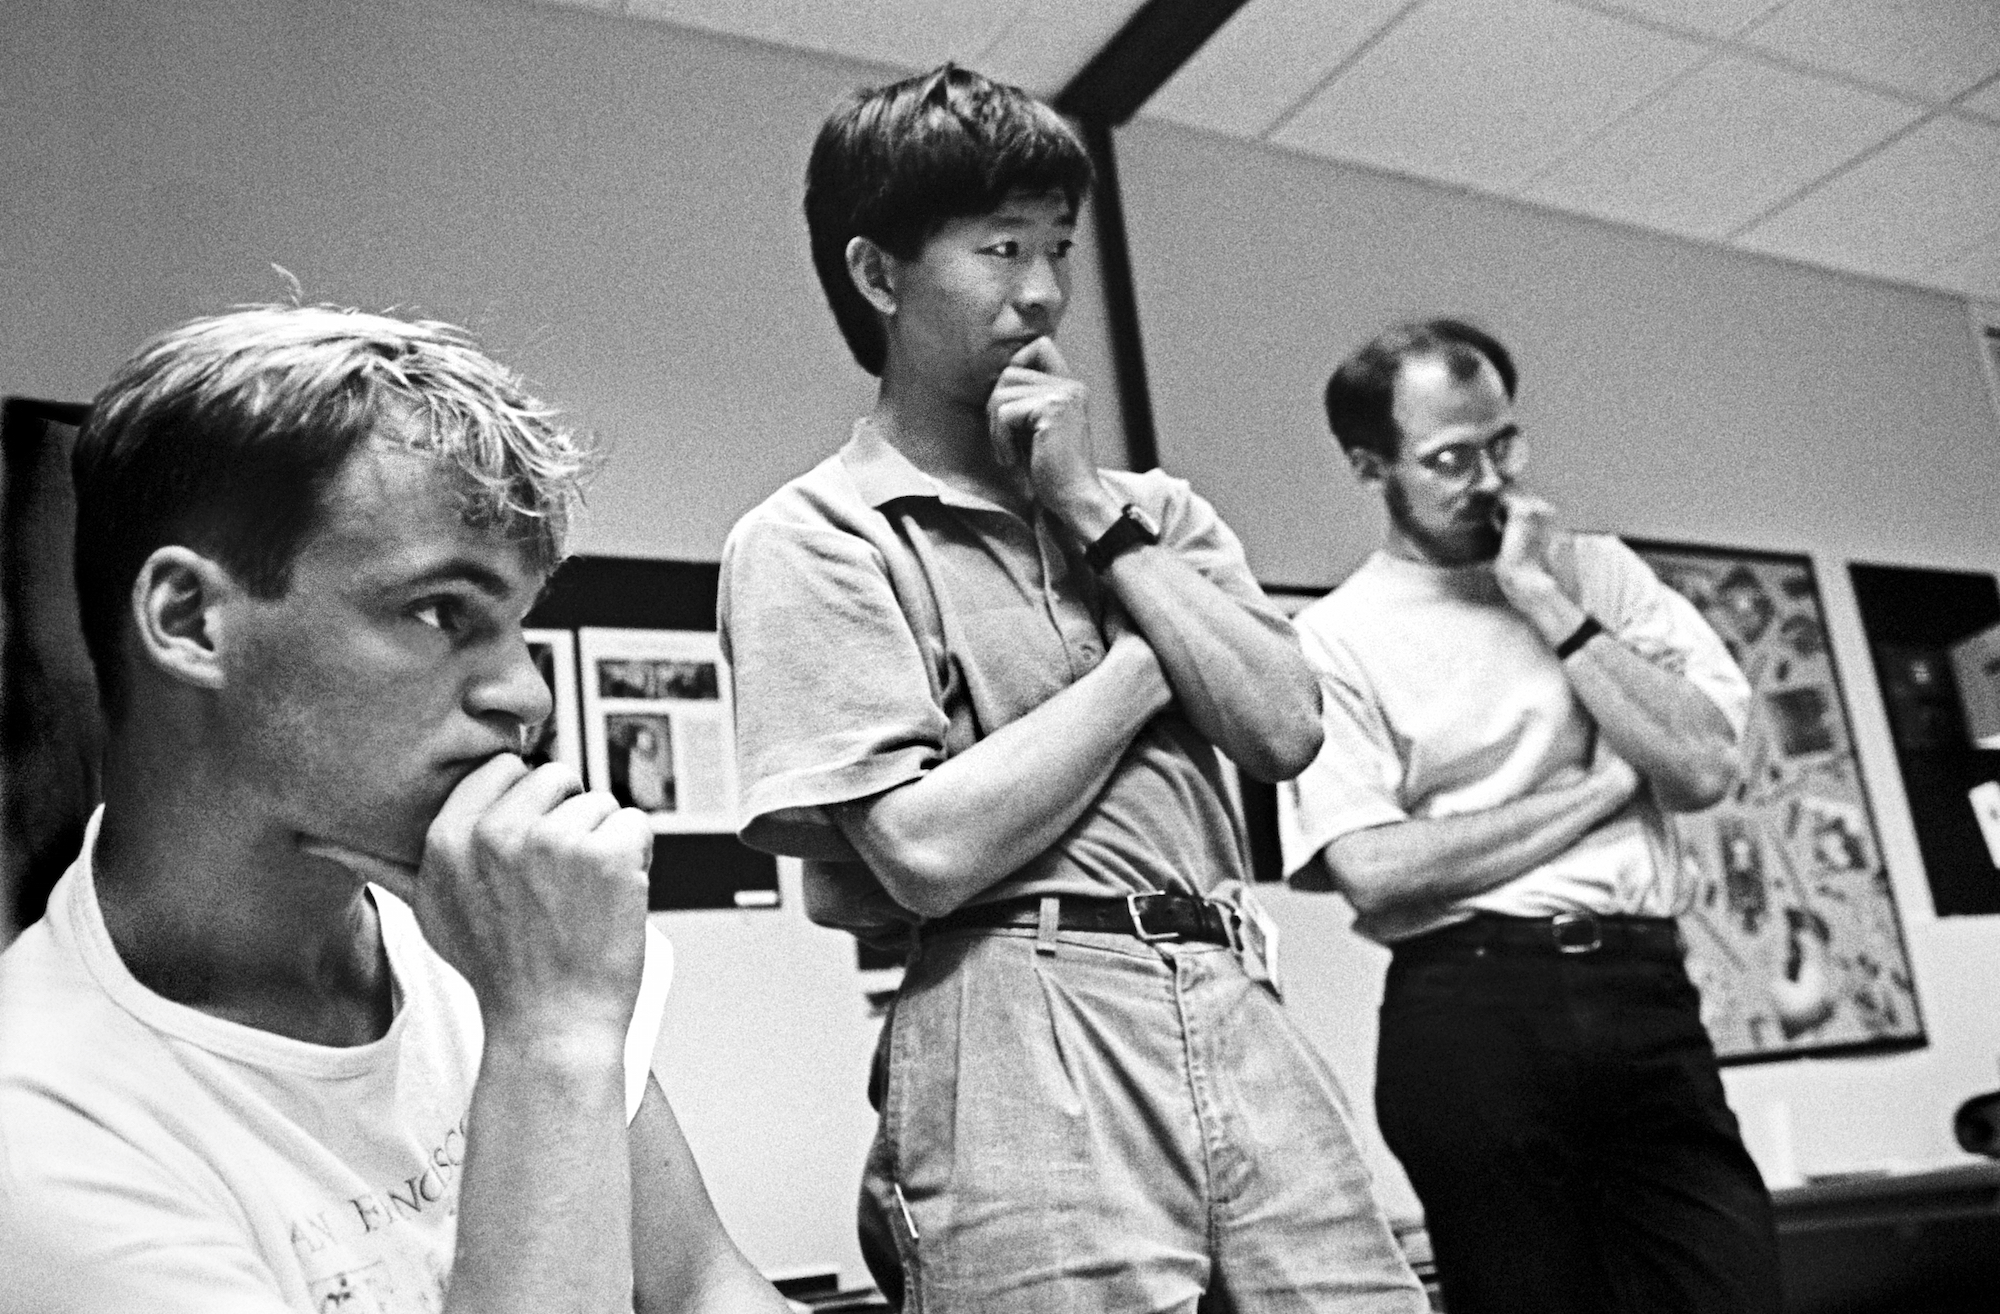 At the 1990 Adobe Photoshop Invitational, members of Adobe's creative team (back row, from left)_ Min Wang and Russell Brown along with an unidentified artist, 1990